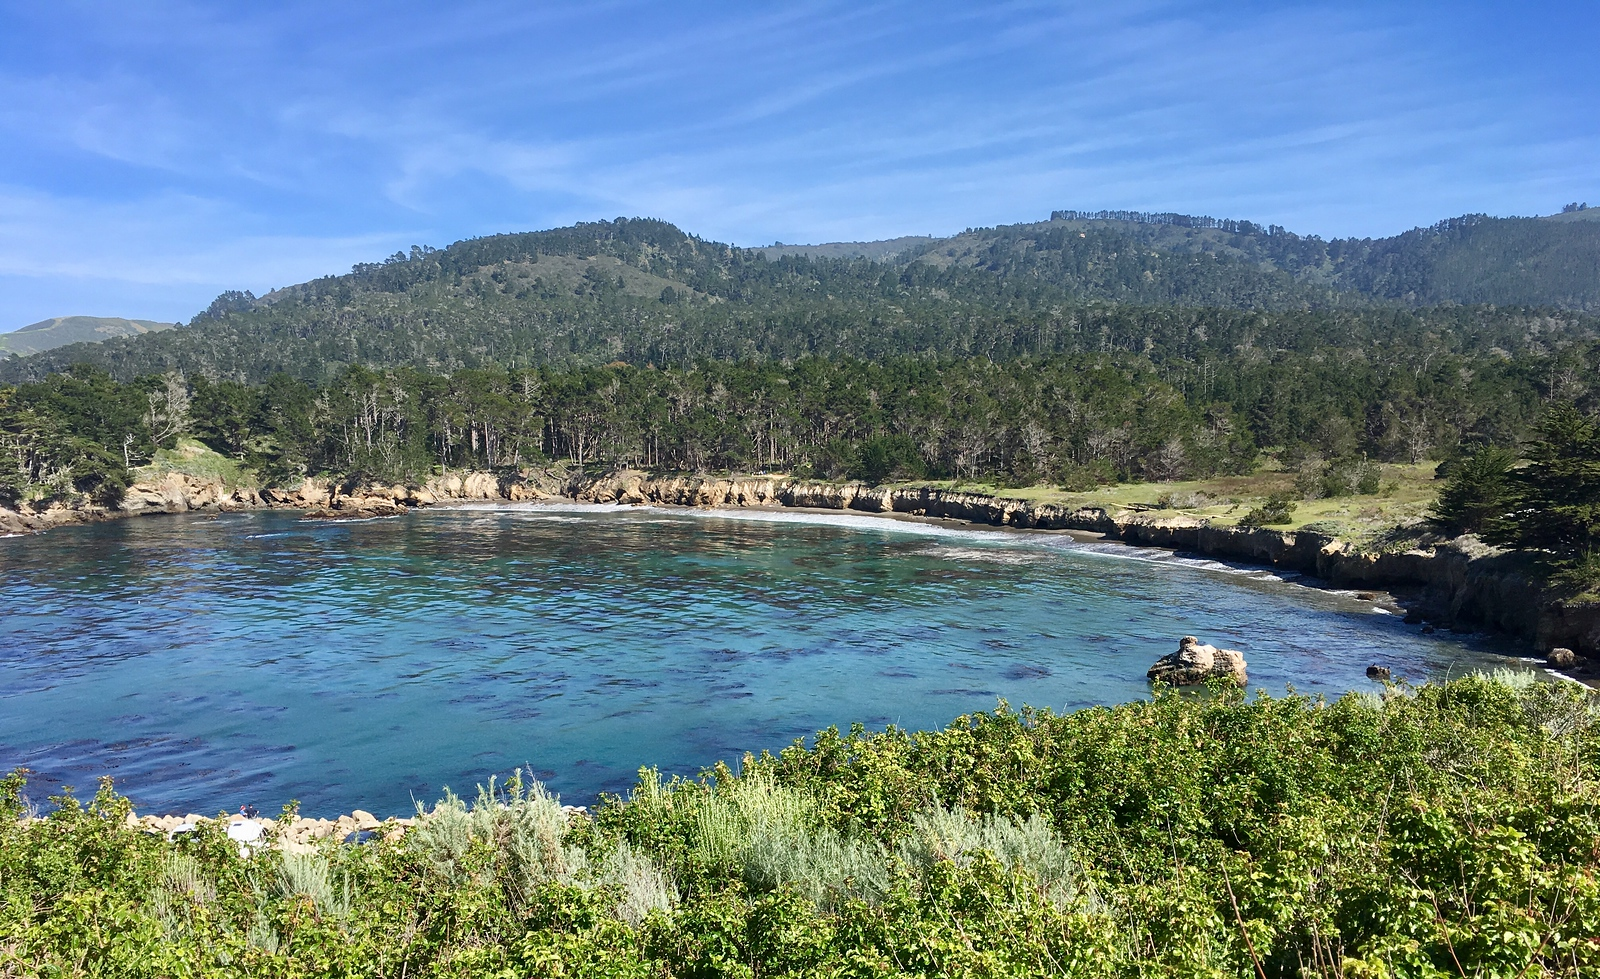 Views of the Whaler's Cove